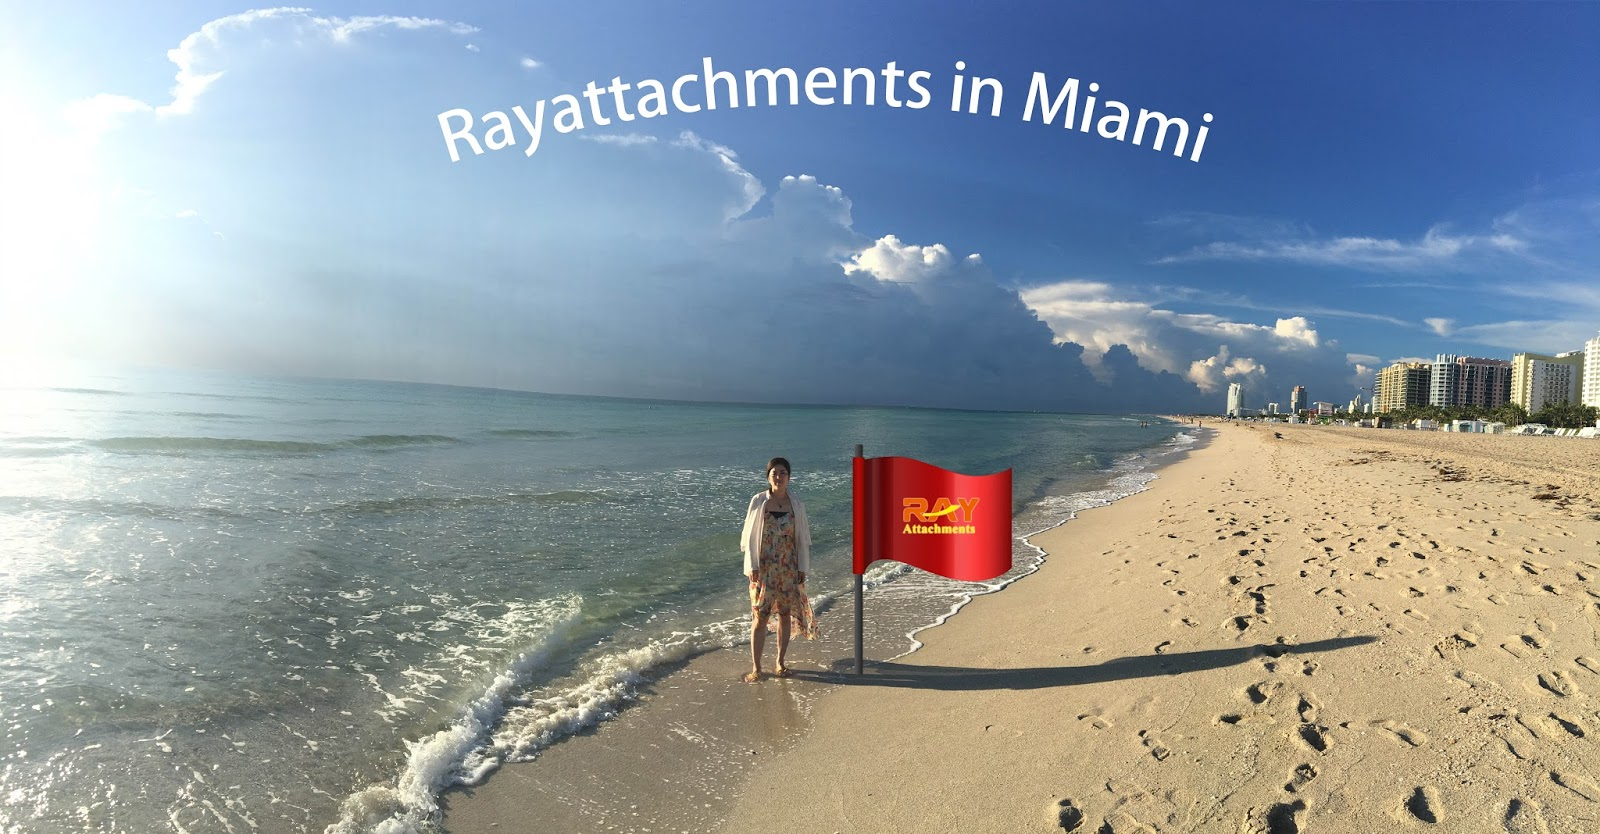 RAY Attachments in Miami001.jpg